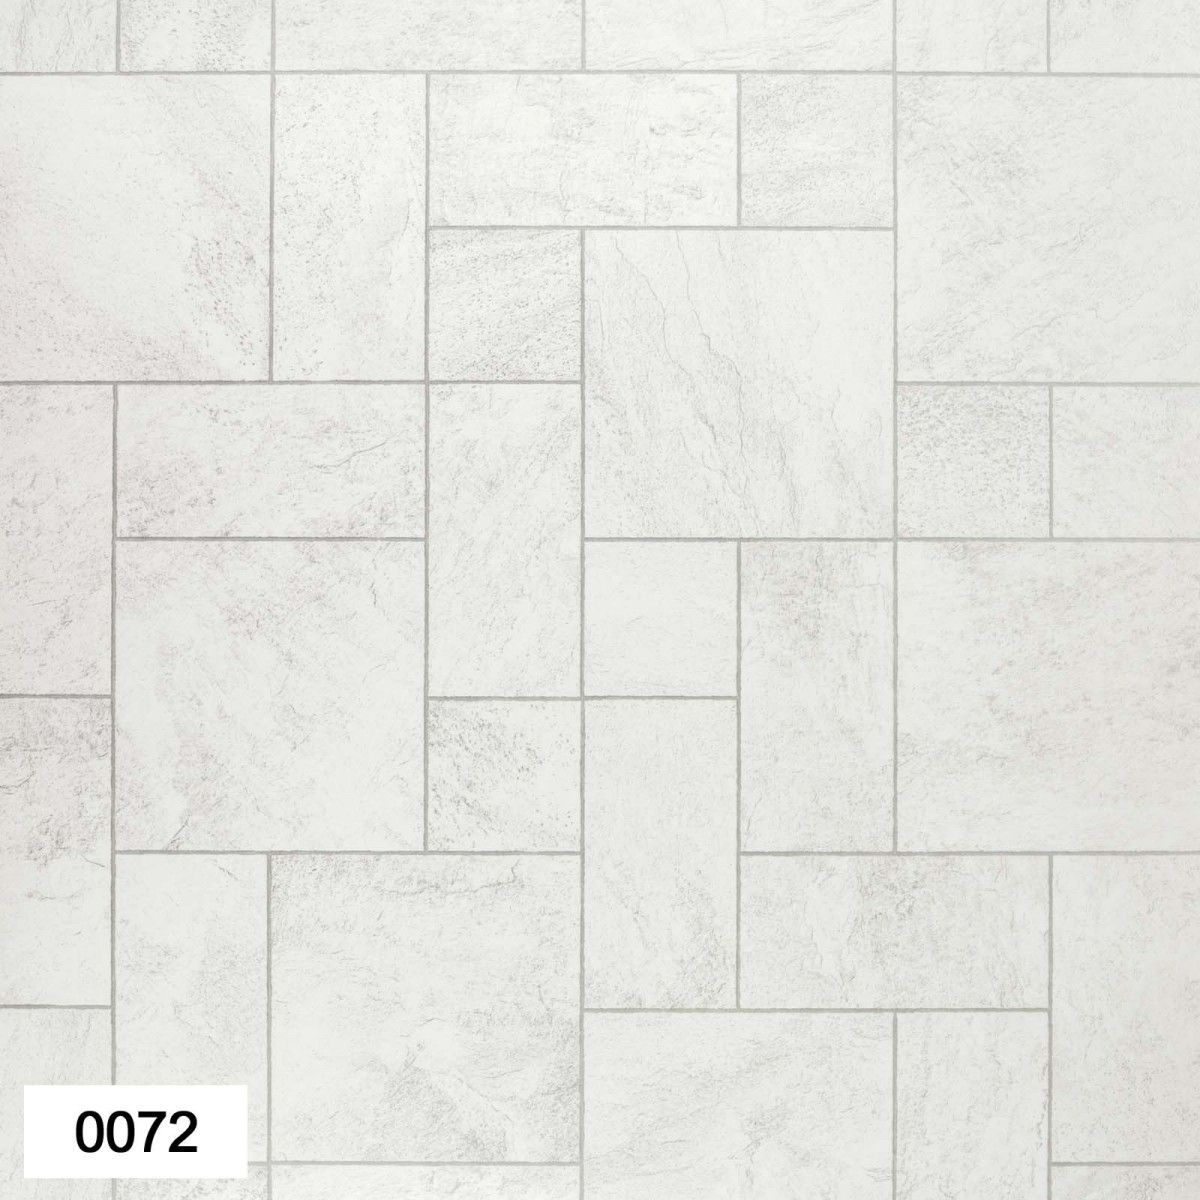 0072 Tile Effect Non Slip Vinyl Flooring | interior me pins ...